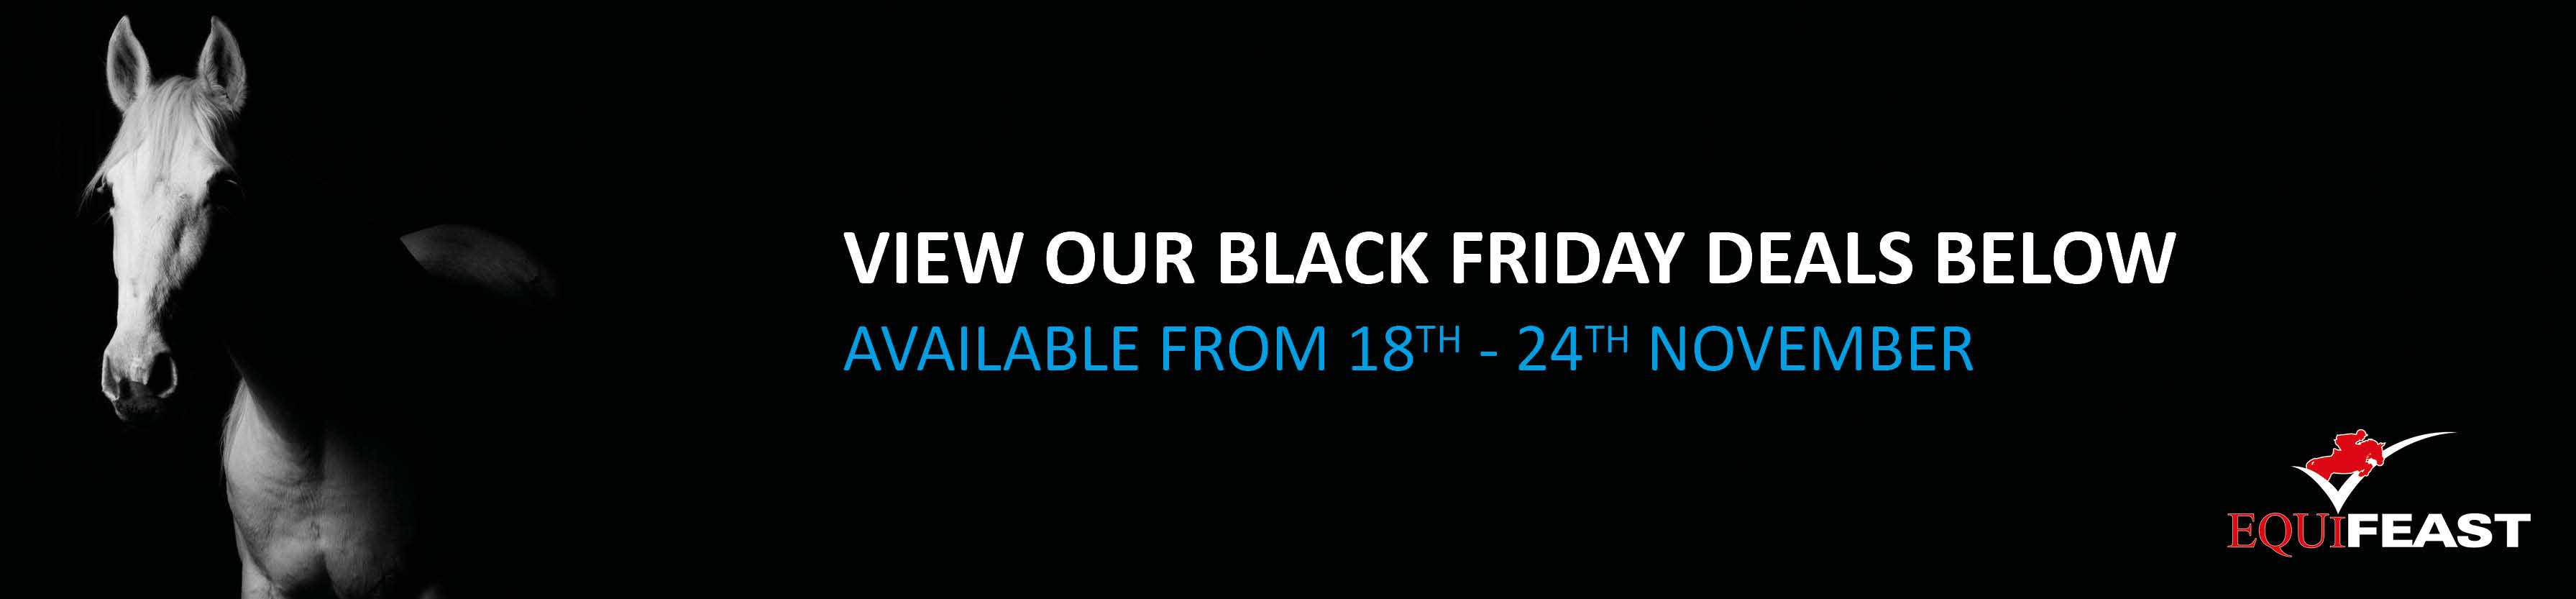 black-friday-website-banner-v2.jpg